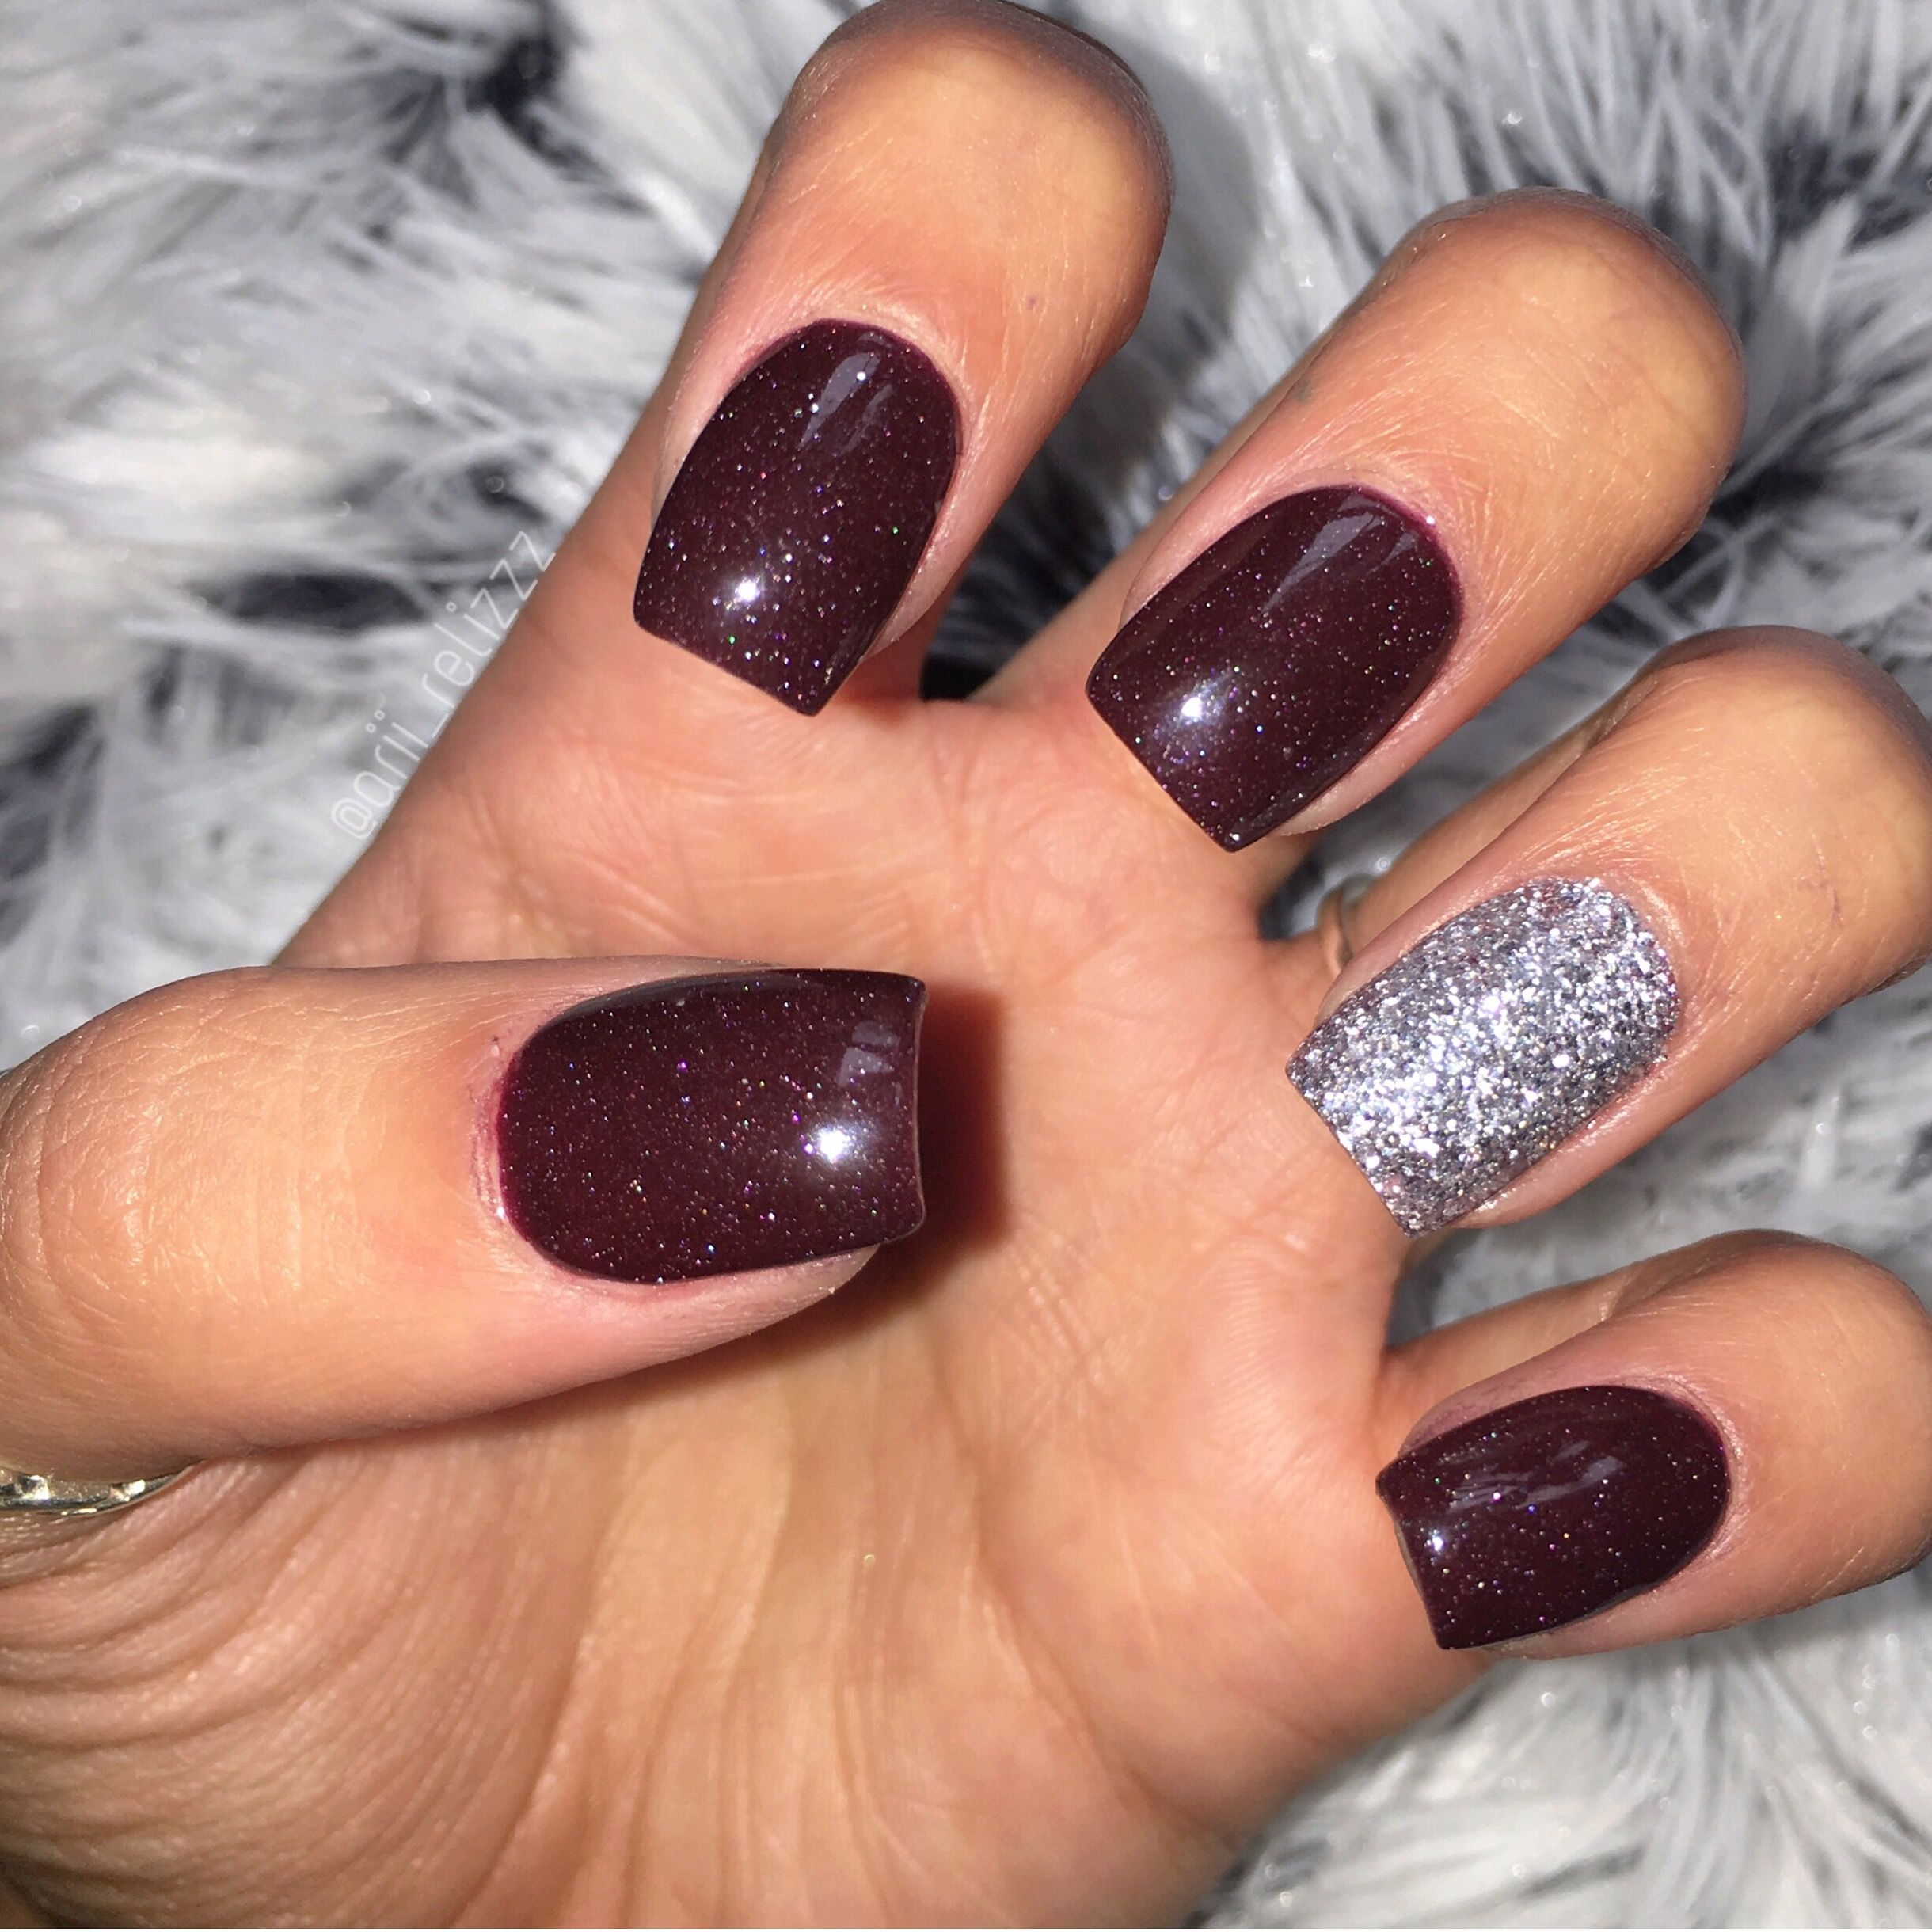 sns nails | nails nails nails | pinterest | sns nails, dipped